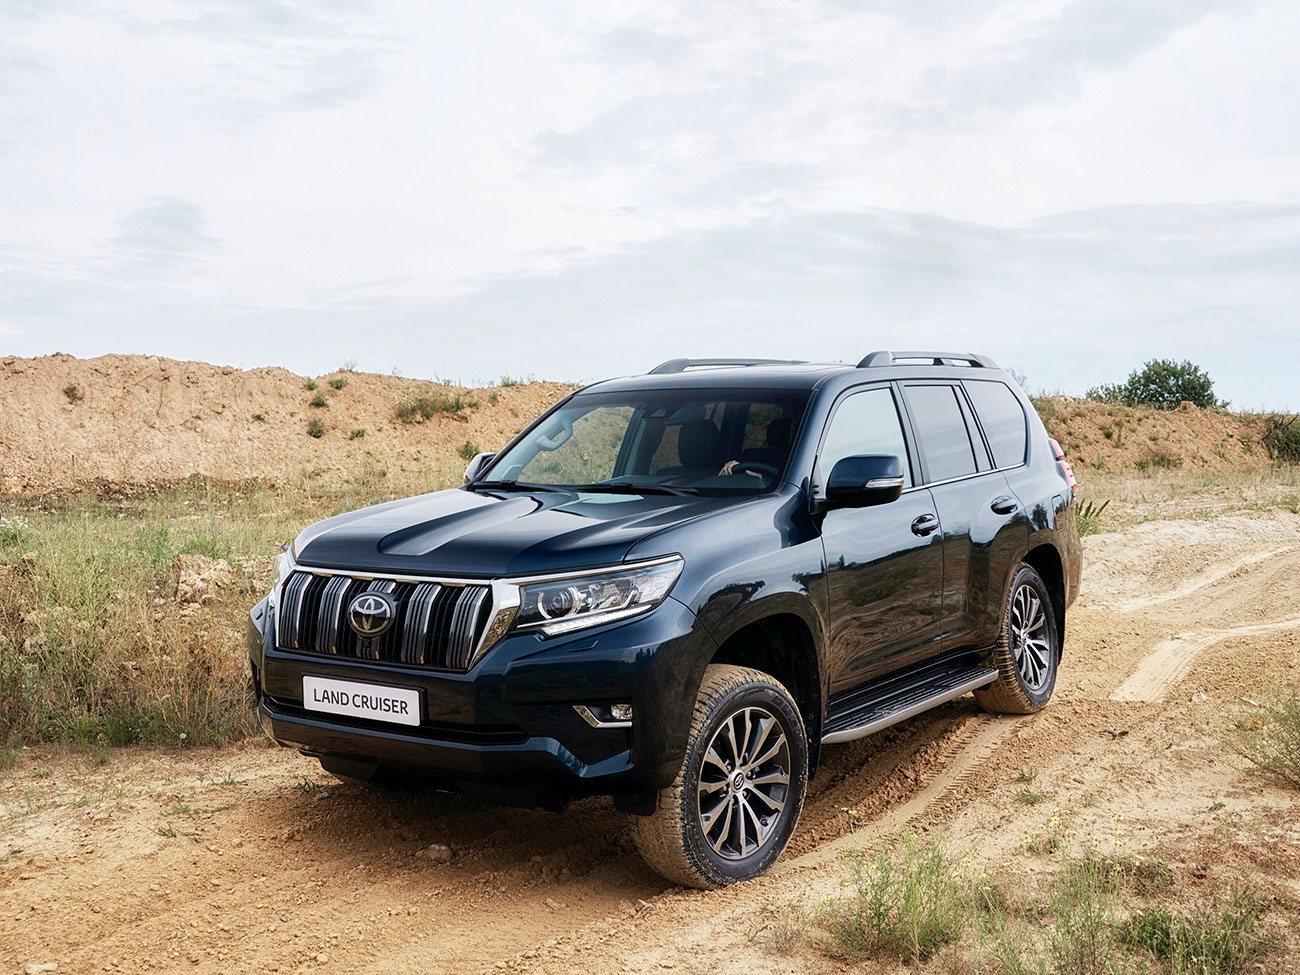 Toyota Land Cruiser Prado внедорожник